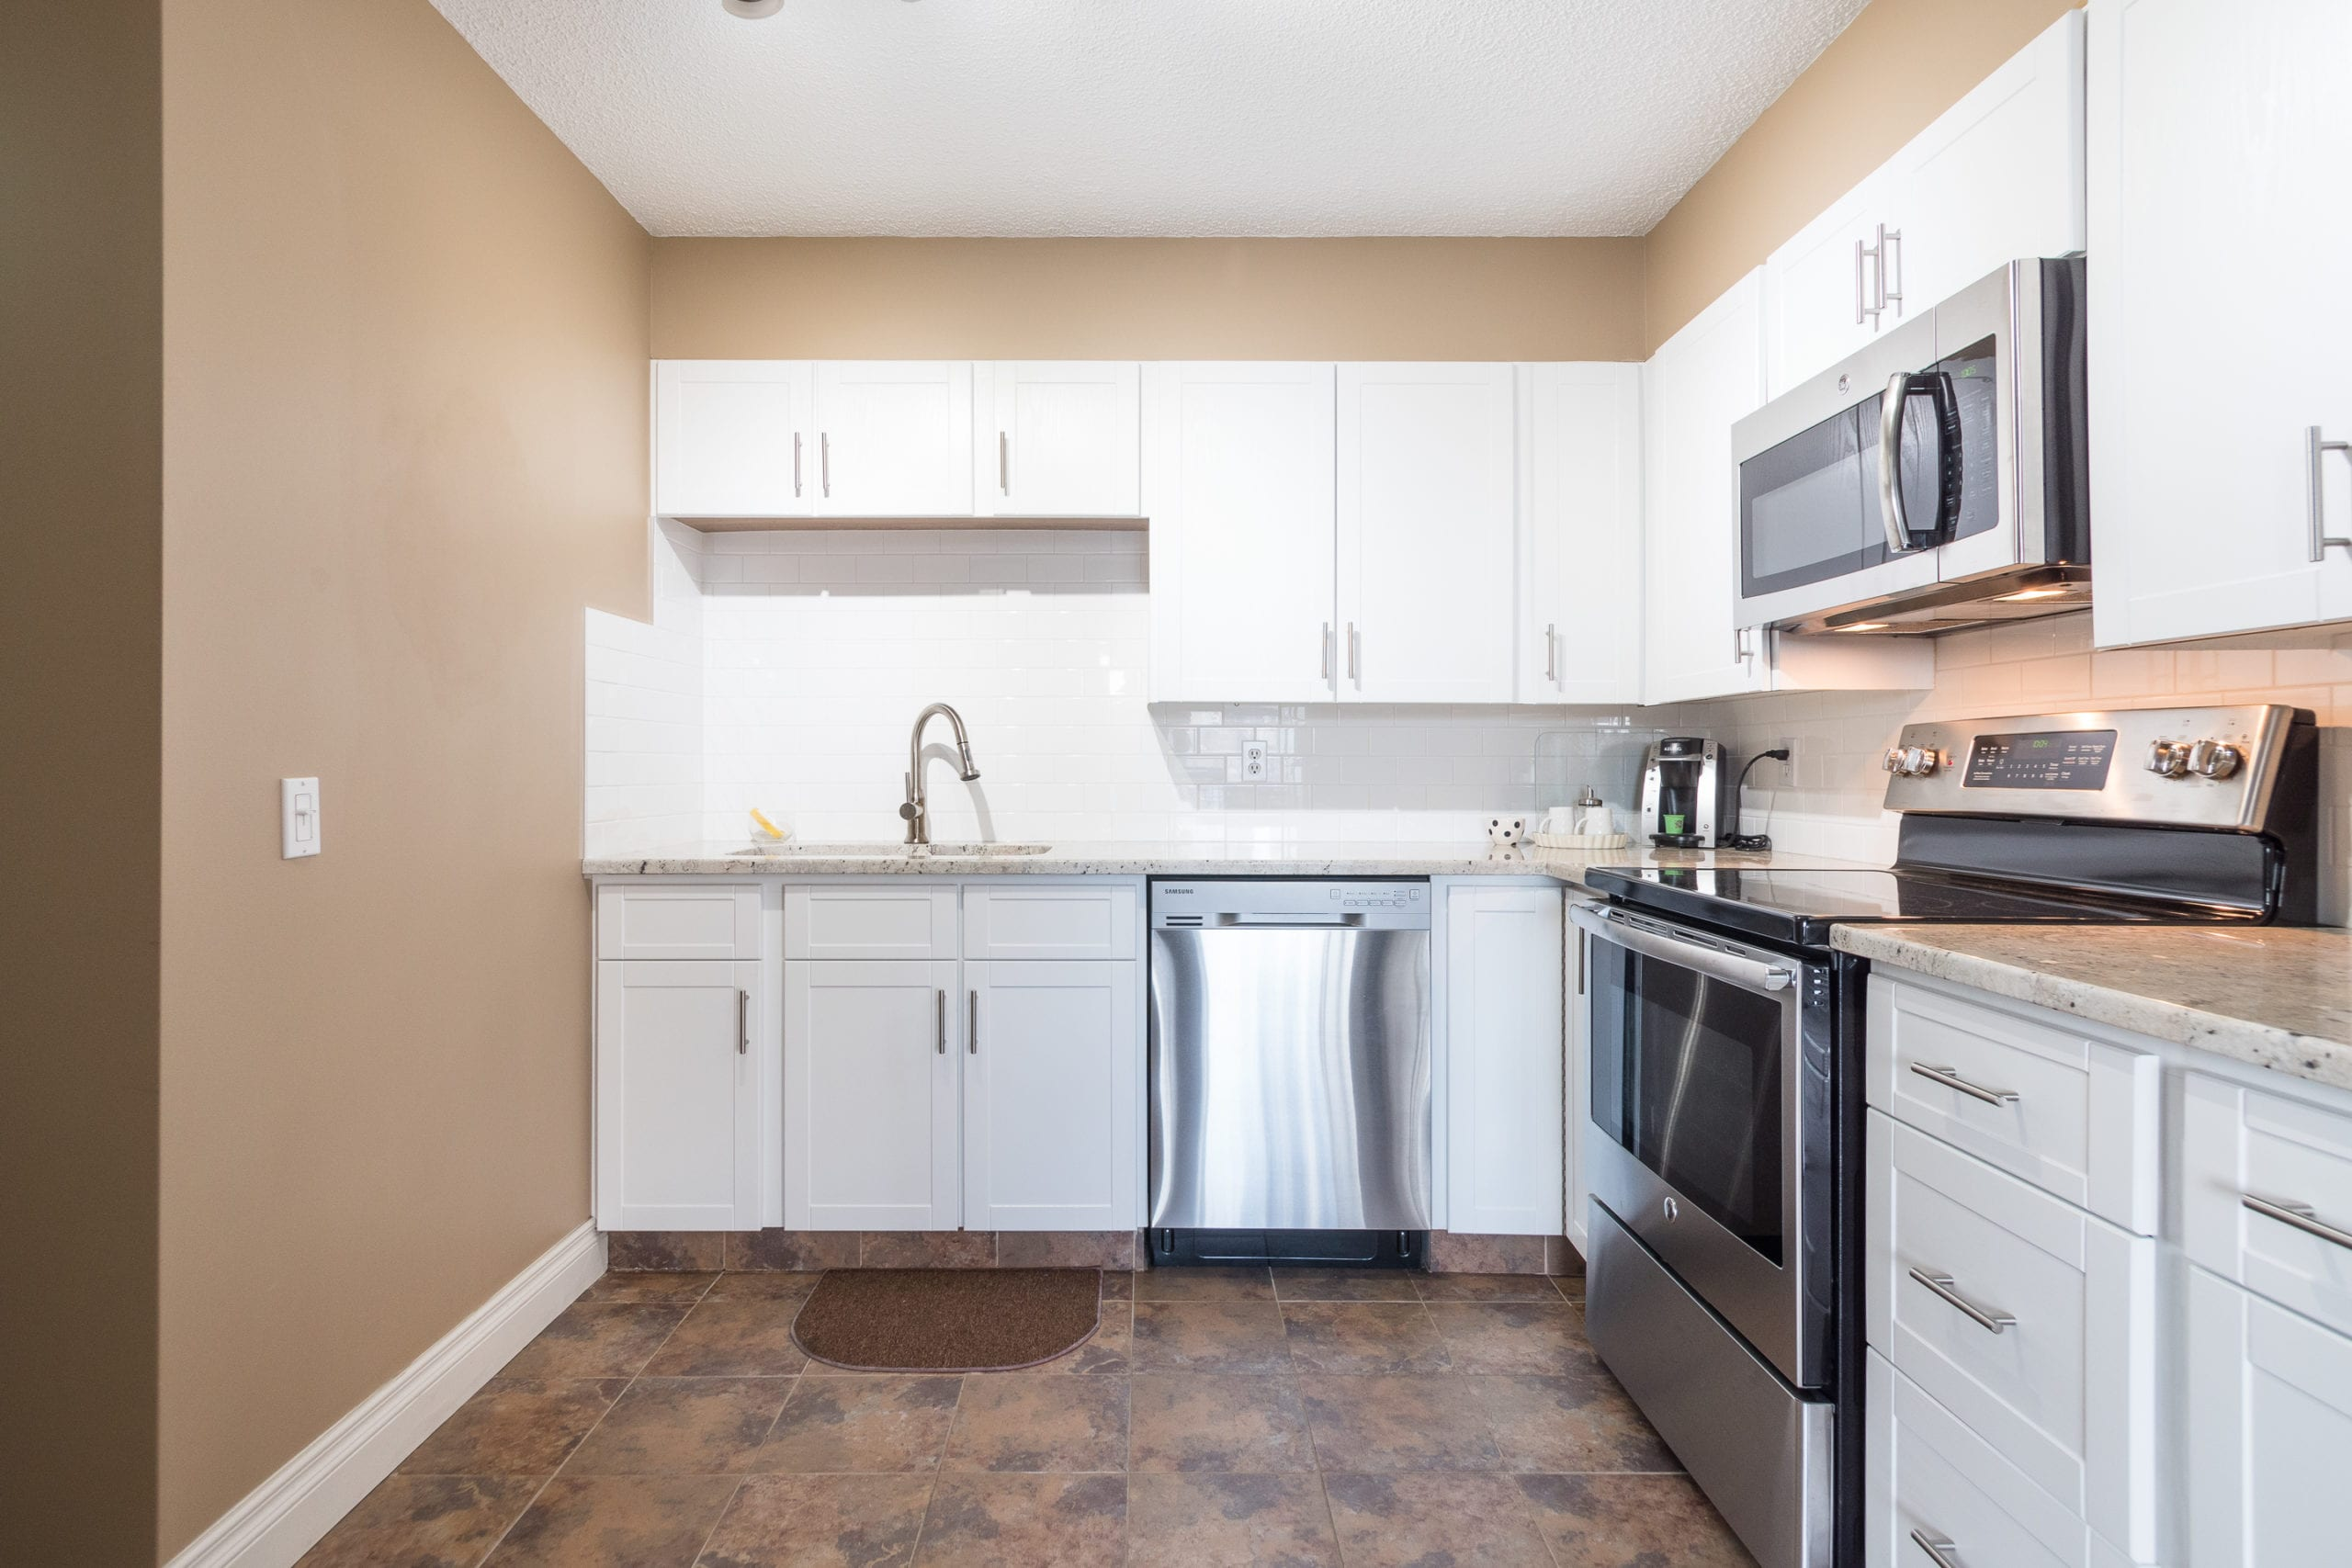 Hello Gorgeous - #705-145 point drive NW, Calgary AB - Tara Molina Real Estate (7 of 45)